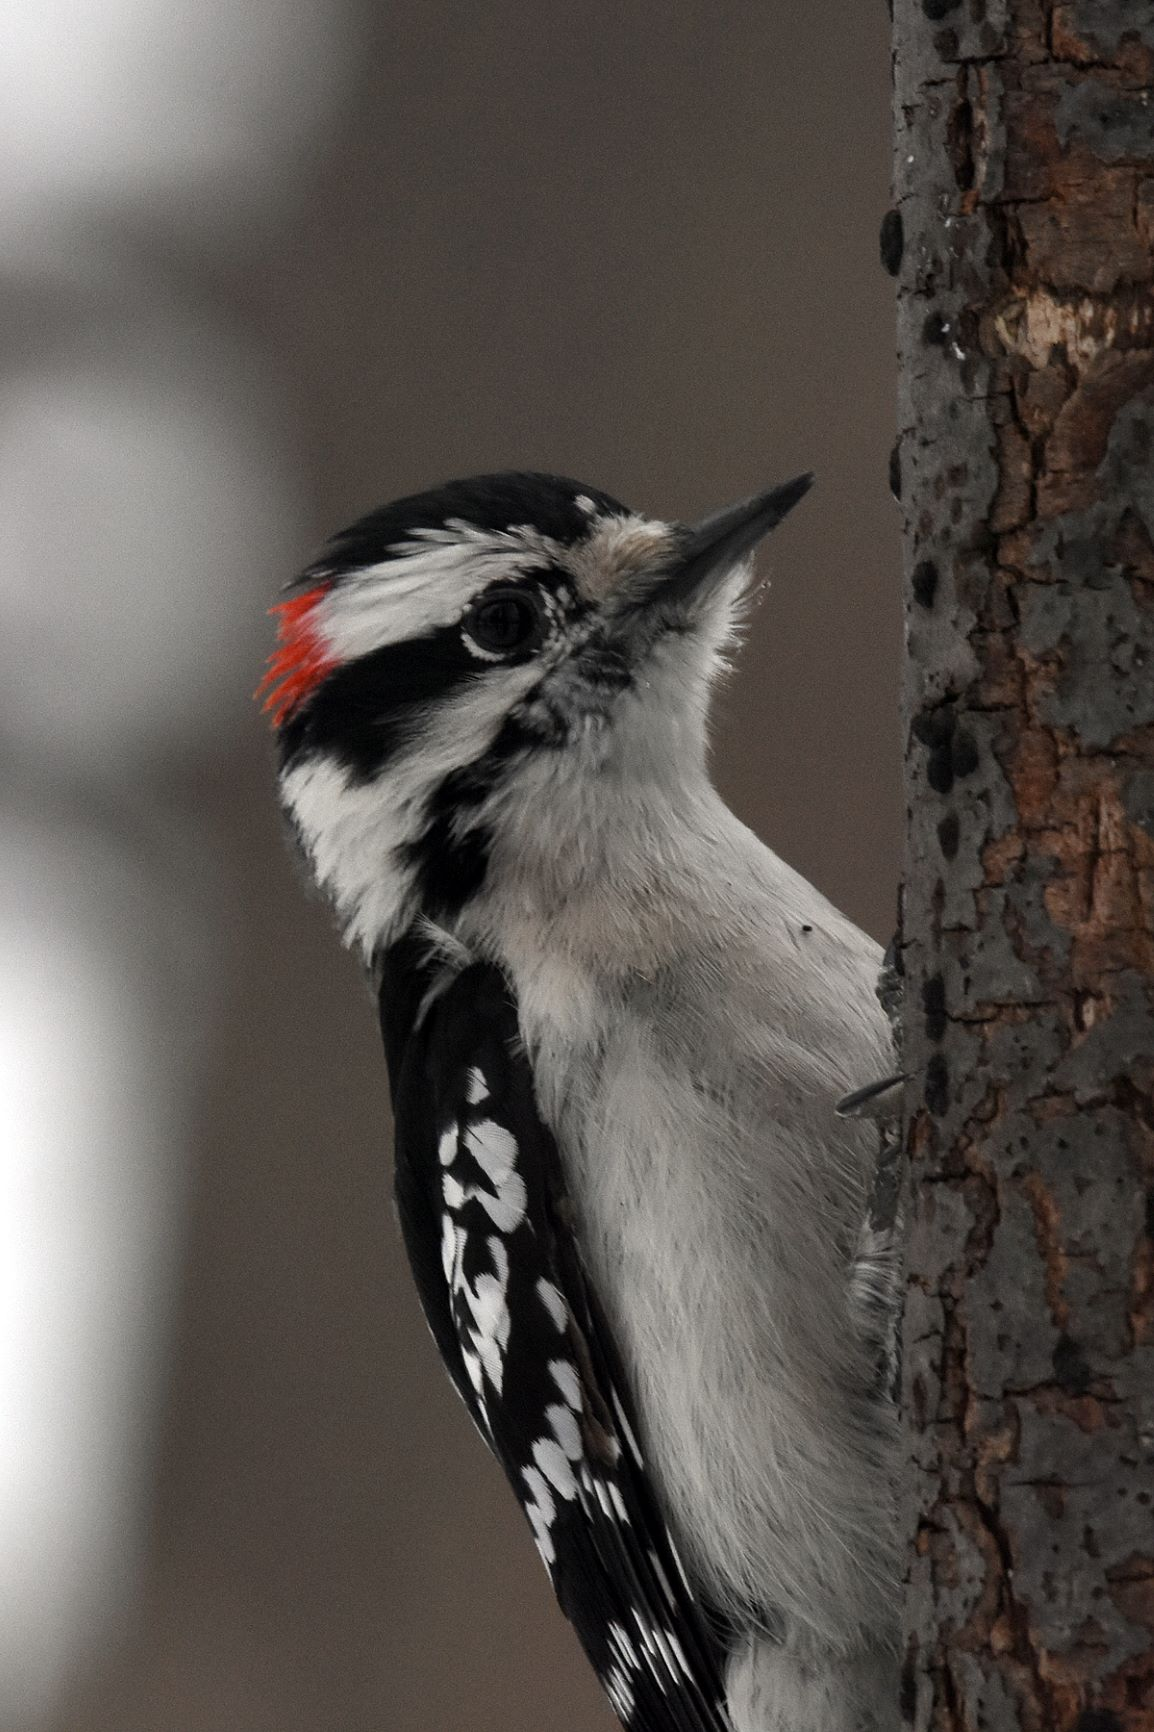 Woodpecker legend - good reading for a winter day